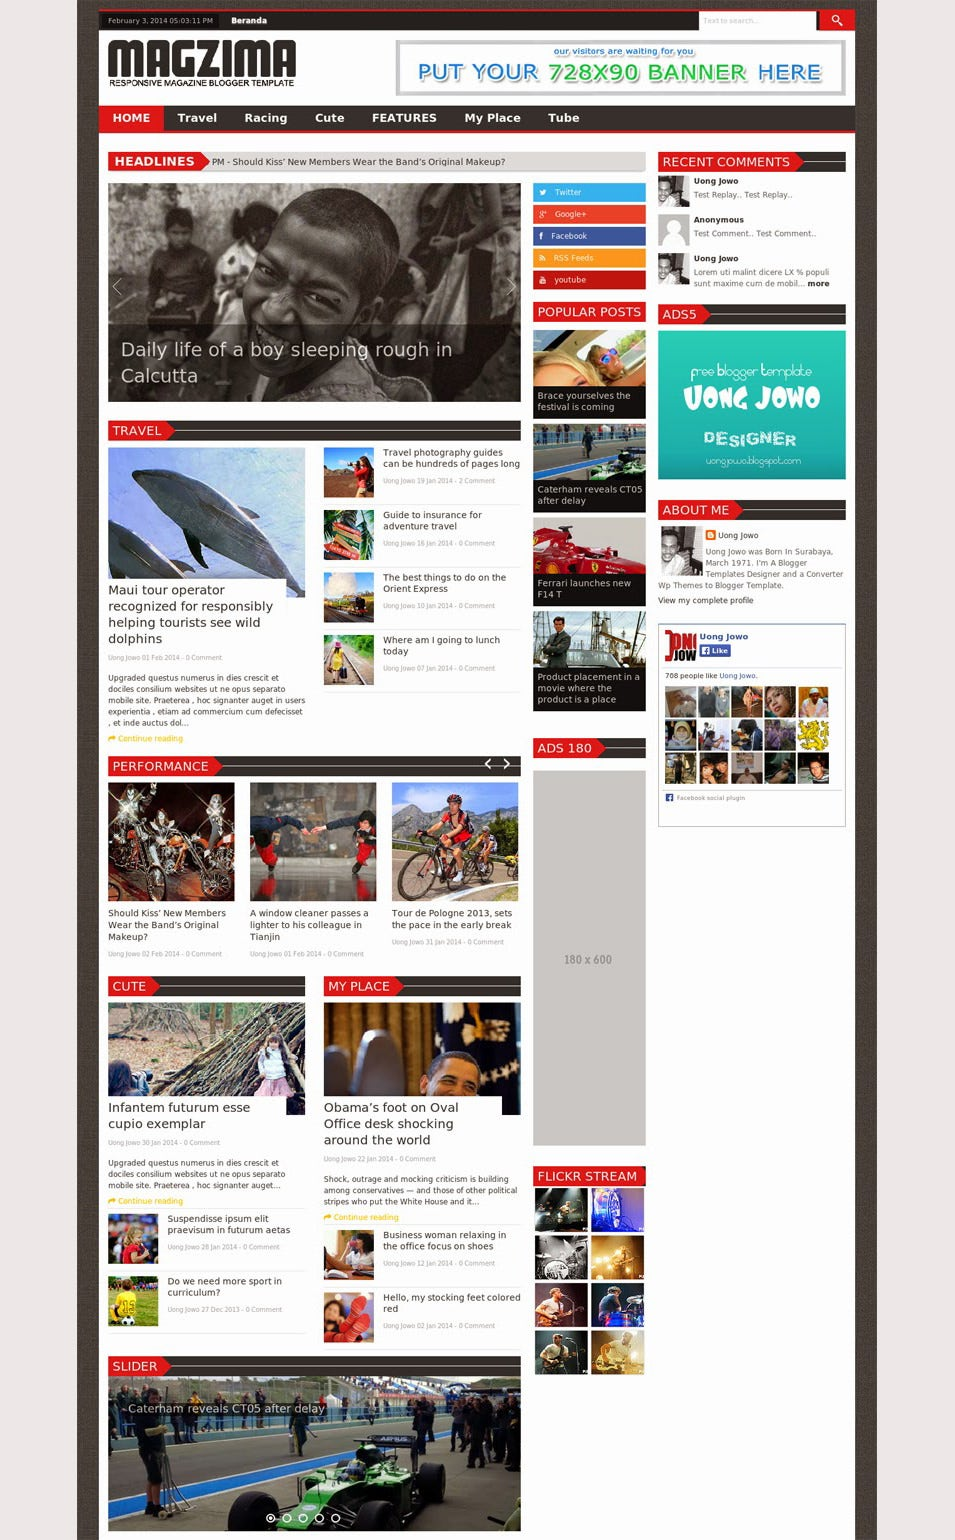 Top Magazine Journal Blog Template - 12+ Free Sample, Example ...